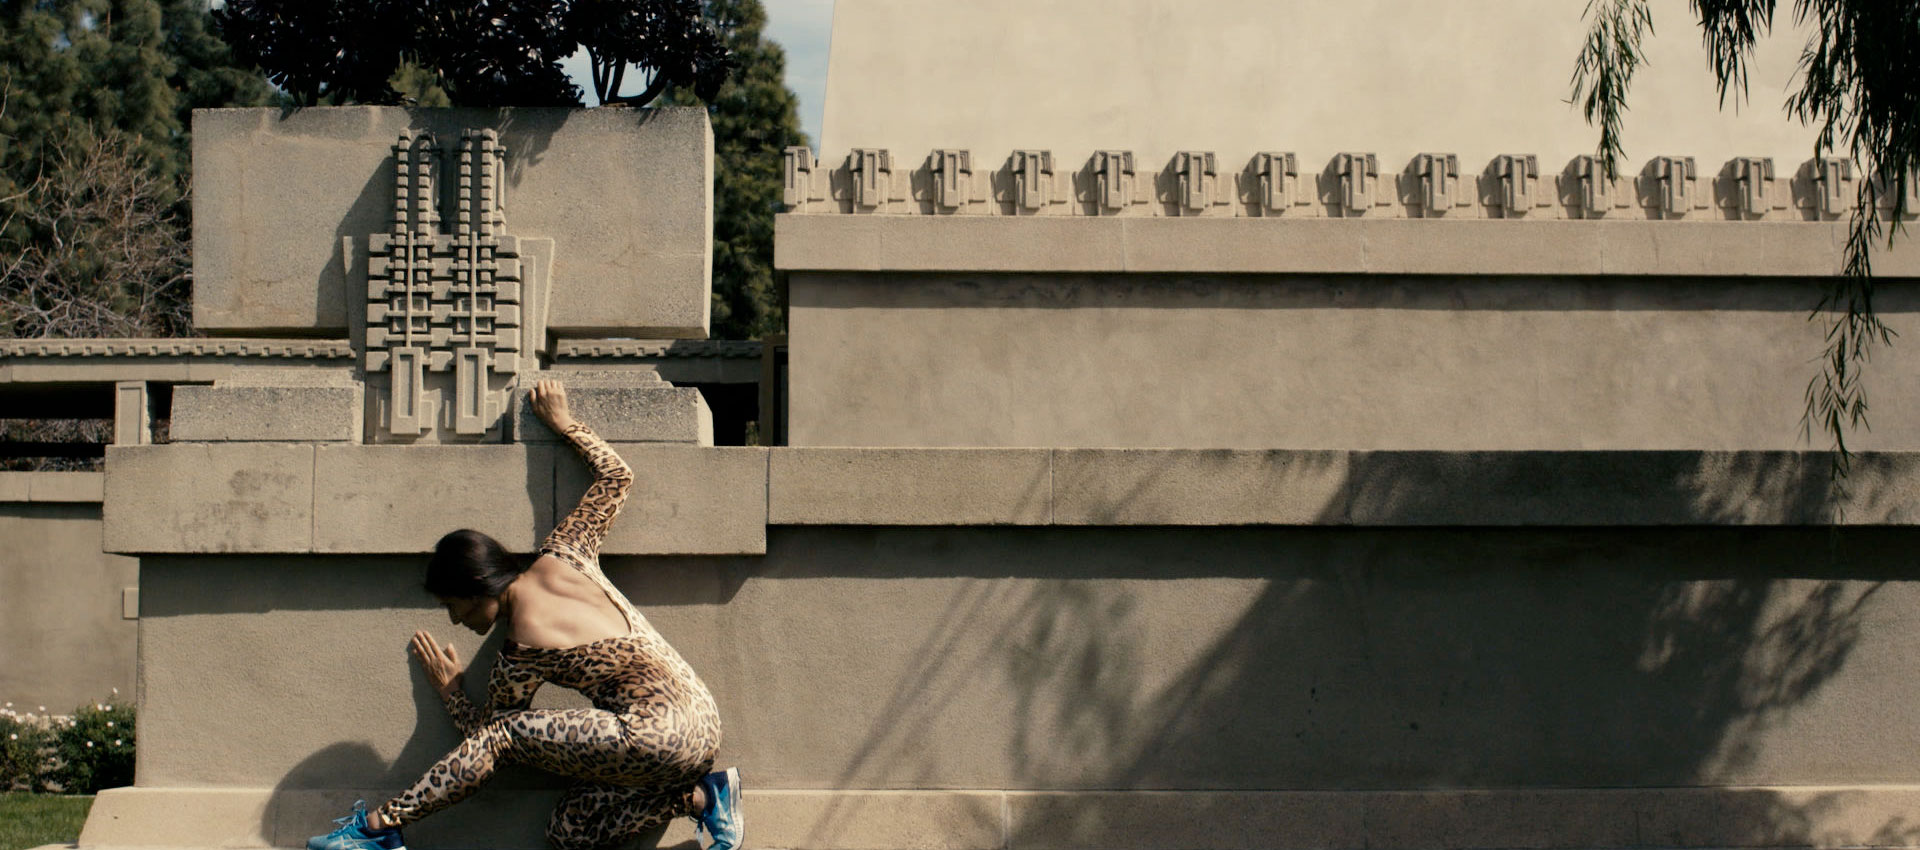 """Clarissa Tossin, Ch'u Mayaa, 2017, production still. Choreography/Performer: Crystal Sepúlveda; Cinematography: Jeremy Glaholt. Originally commissioned and produced by the City of Los Angeles Department of Cultural Affairs for the exhibition """"Condemned to be Modern"""" as part of Getty's """"Pacific Standard Time:LA/LA."""" Courtesy the artist"""